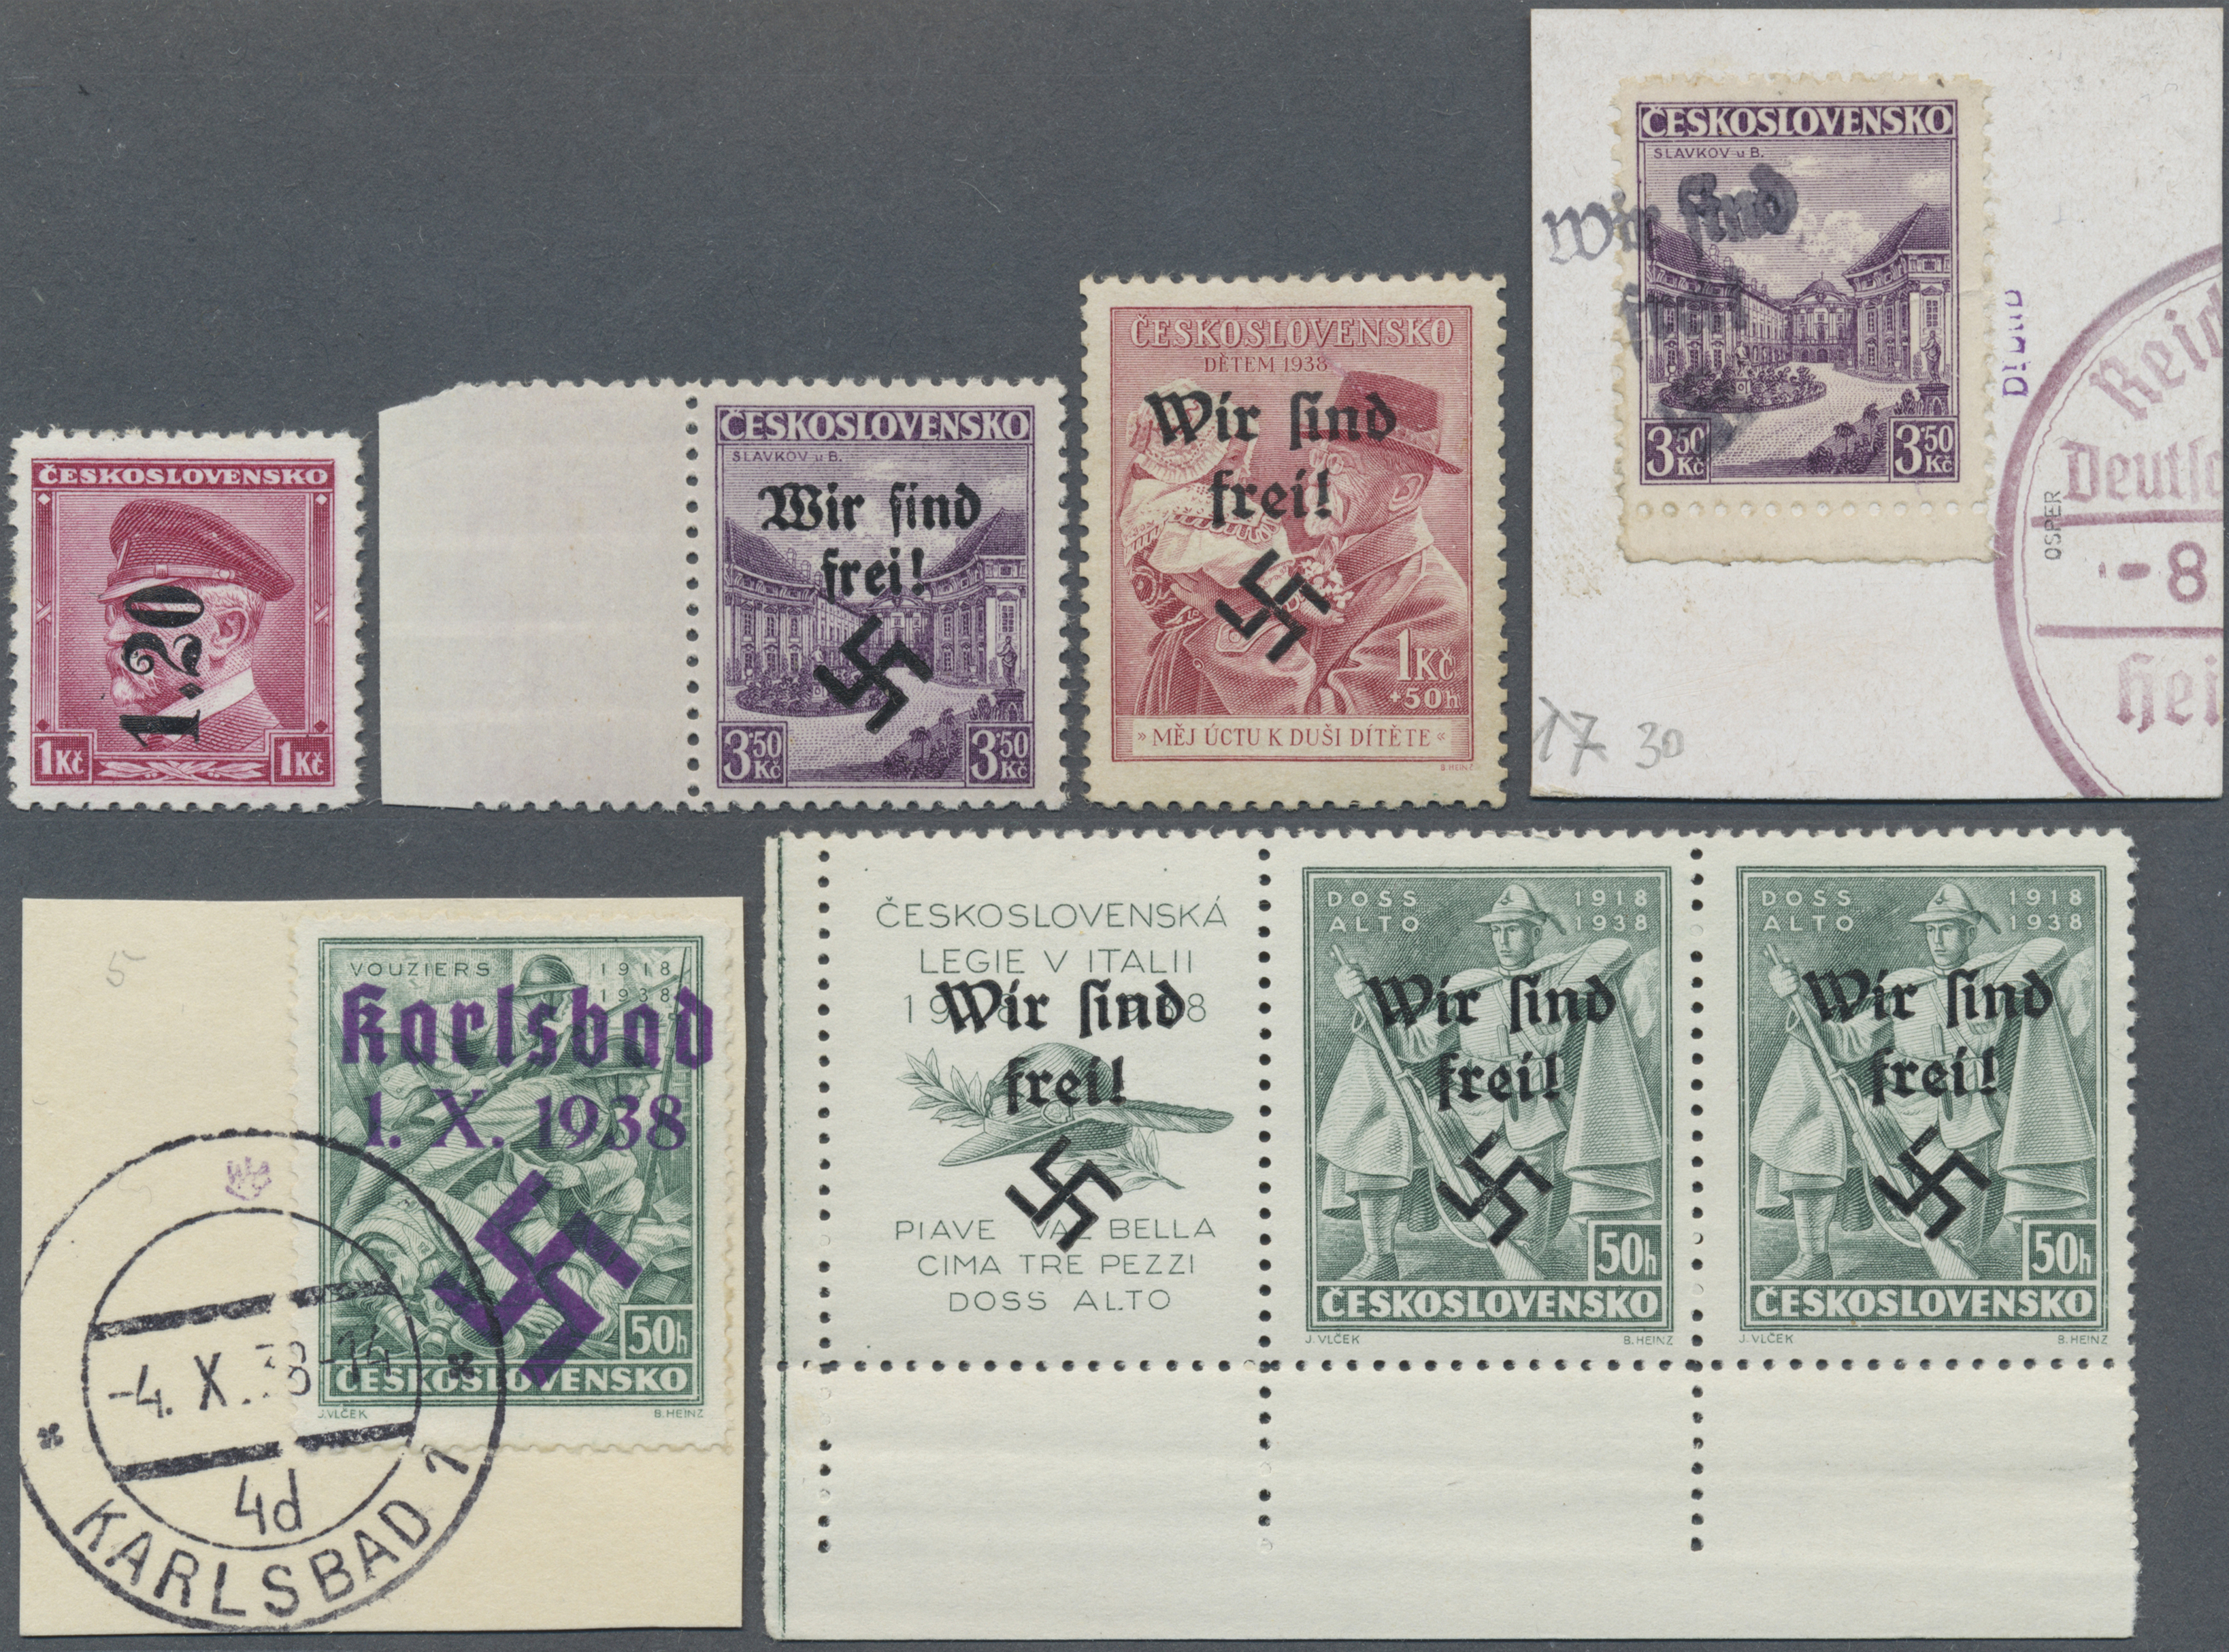 Lot 37474 - sudetenland  -  Auktionshaus Christoph Gärtner GmbH & Co. KG Collections Germany,  Collections Supplement, Surprise boxes #39 Day 7